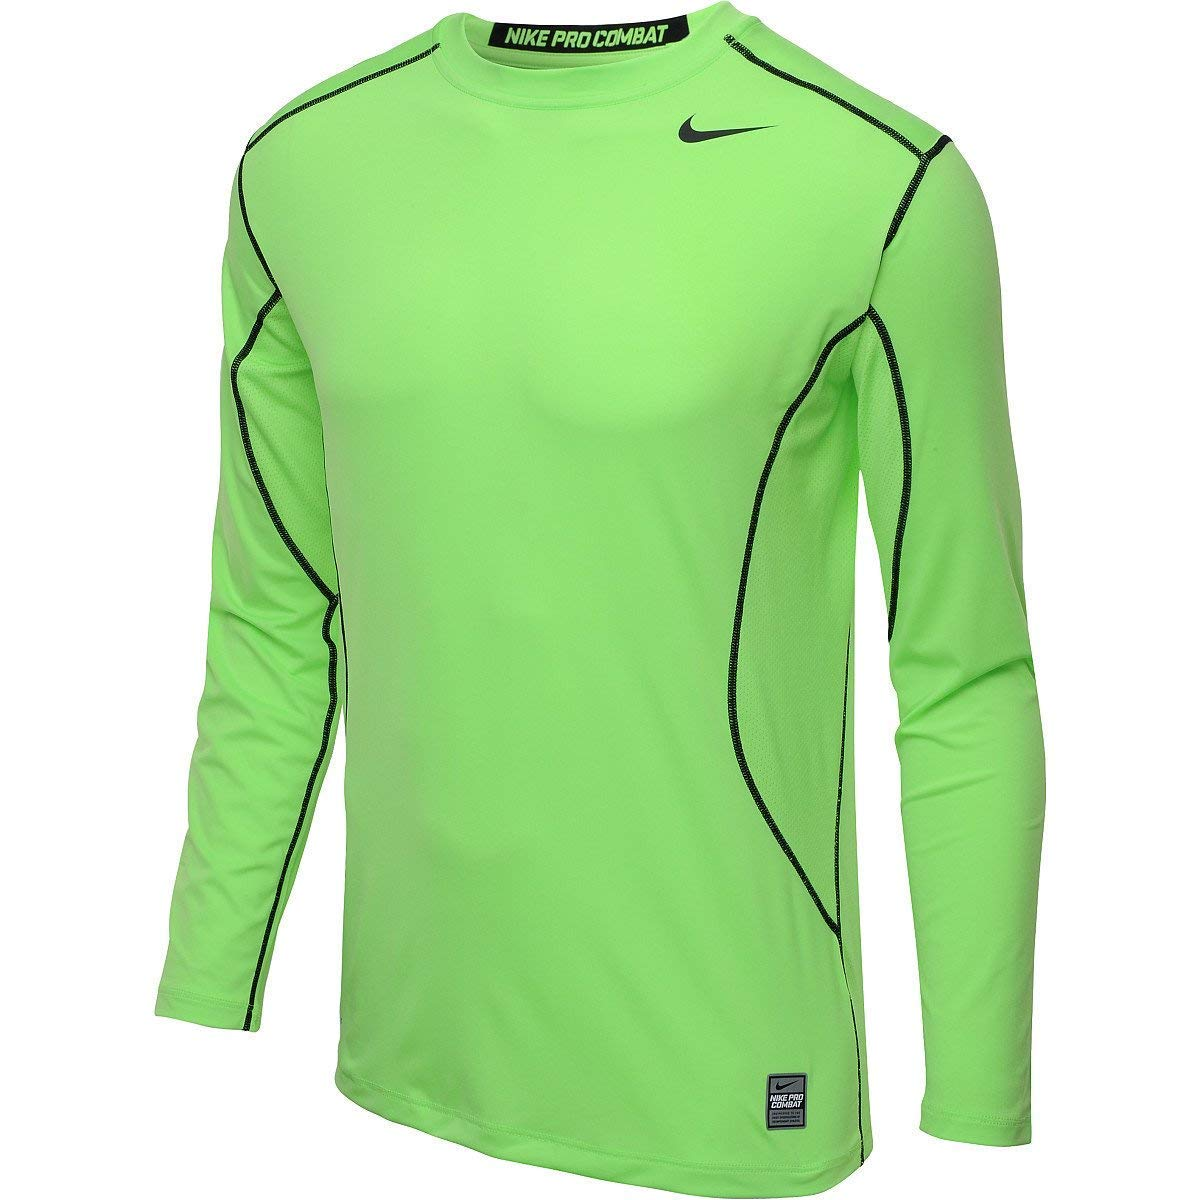 543372ac7 Nike Long Sleeve Pro Combat Core Fitted Shirt - DREAMWORKS